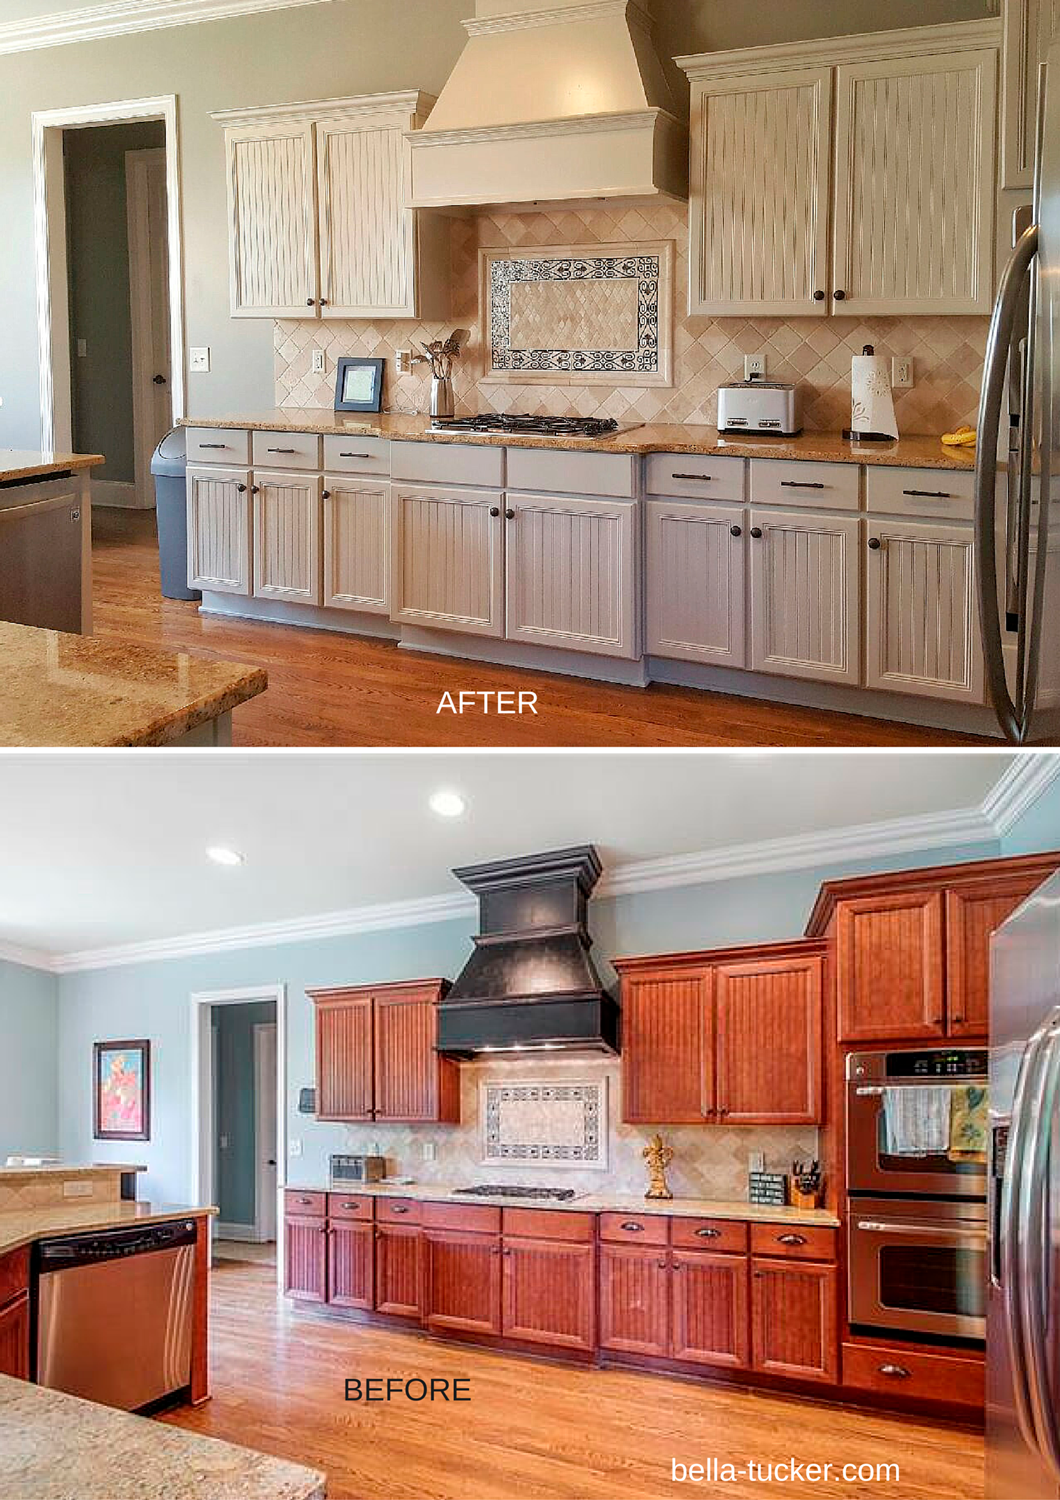 Kitchen Cabinet Painting Franklin TN before and after & Painted Cabinets Nashville TN Before and After Photos